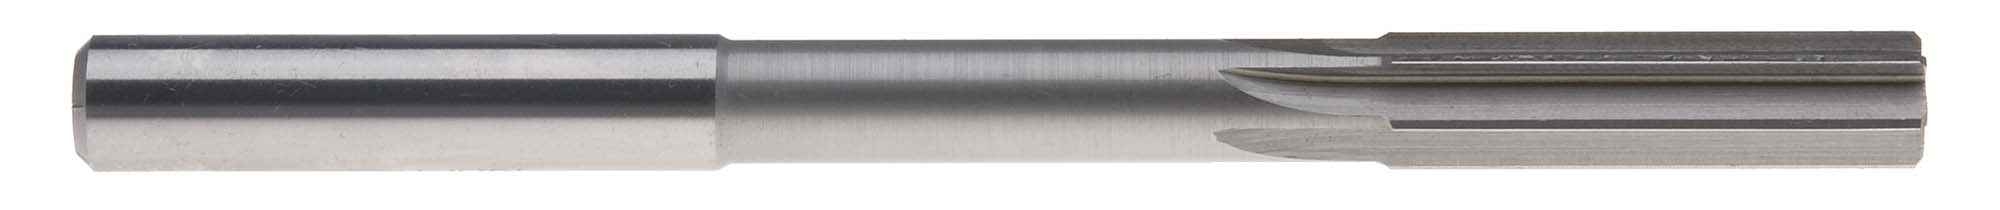 6.5mm Metric Chucking Reamer, High Speed Steel